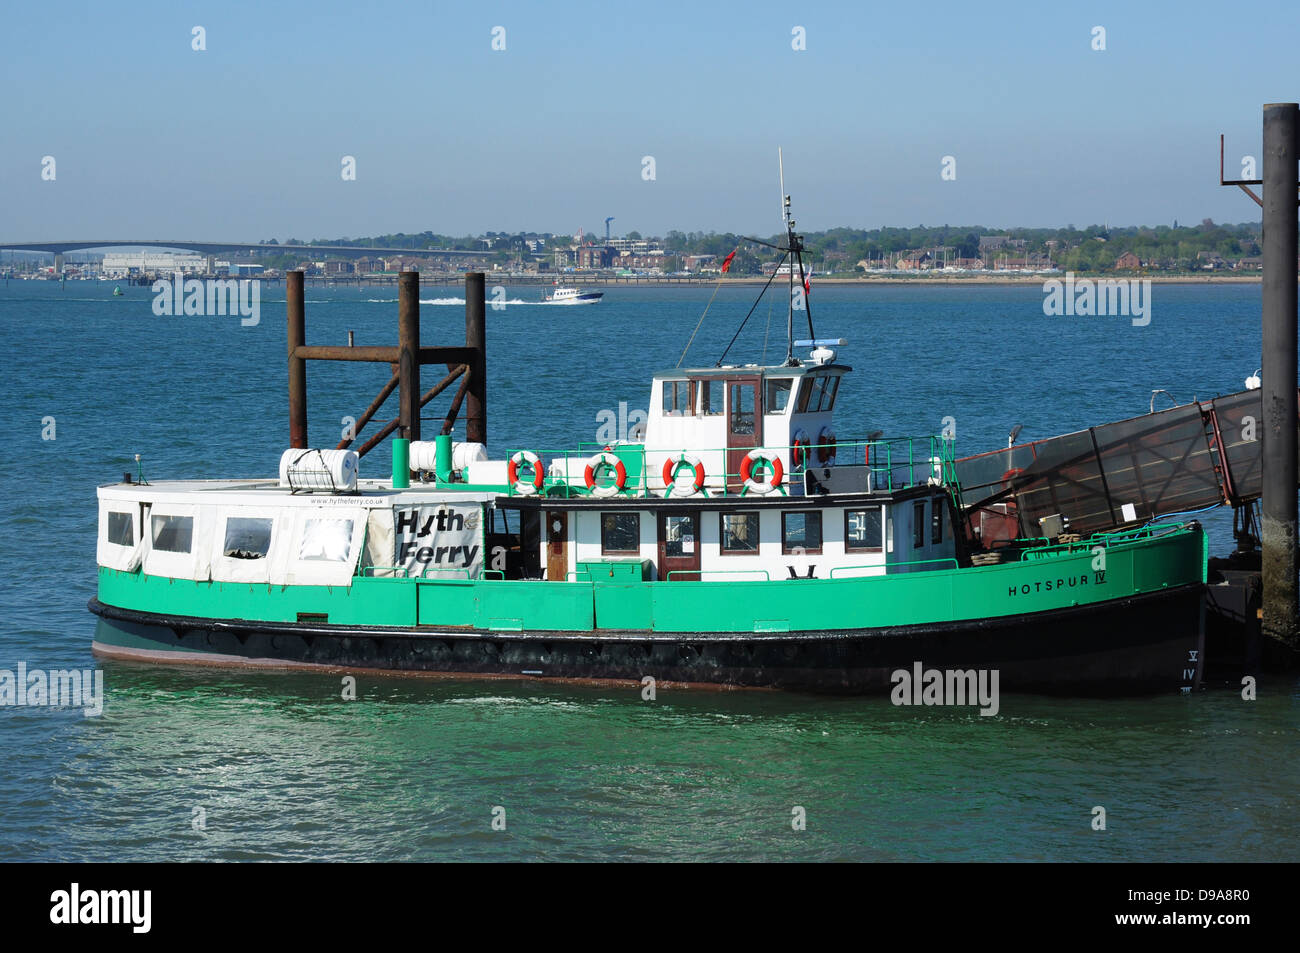 Hythe Ferry 'Hotspur 1V' for Southampton at Hythe pier head, Hampshire, England, UK - Stock Image